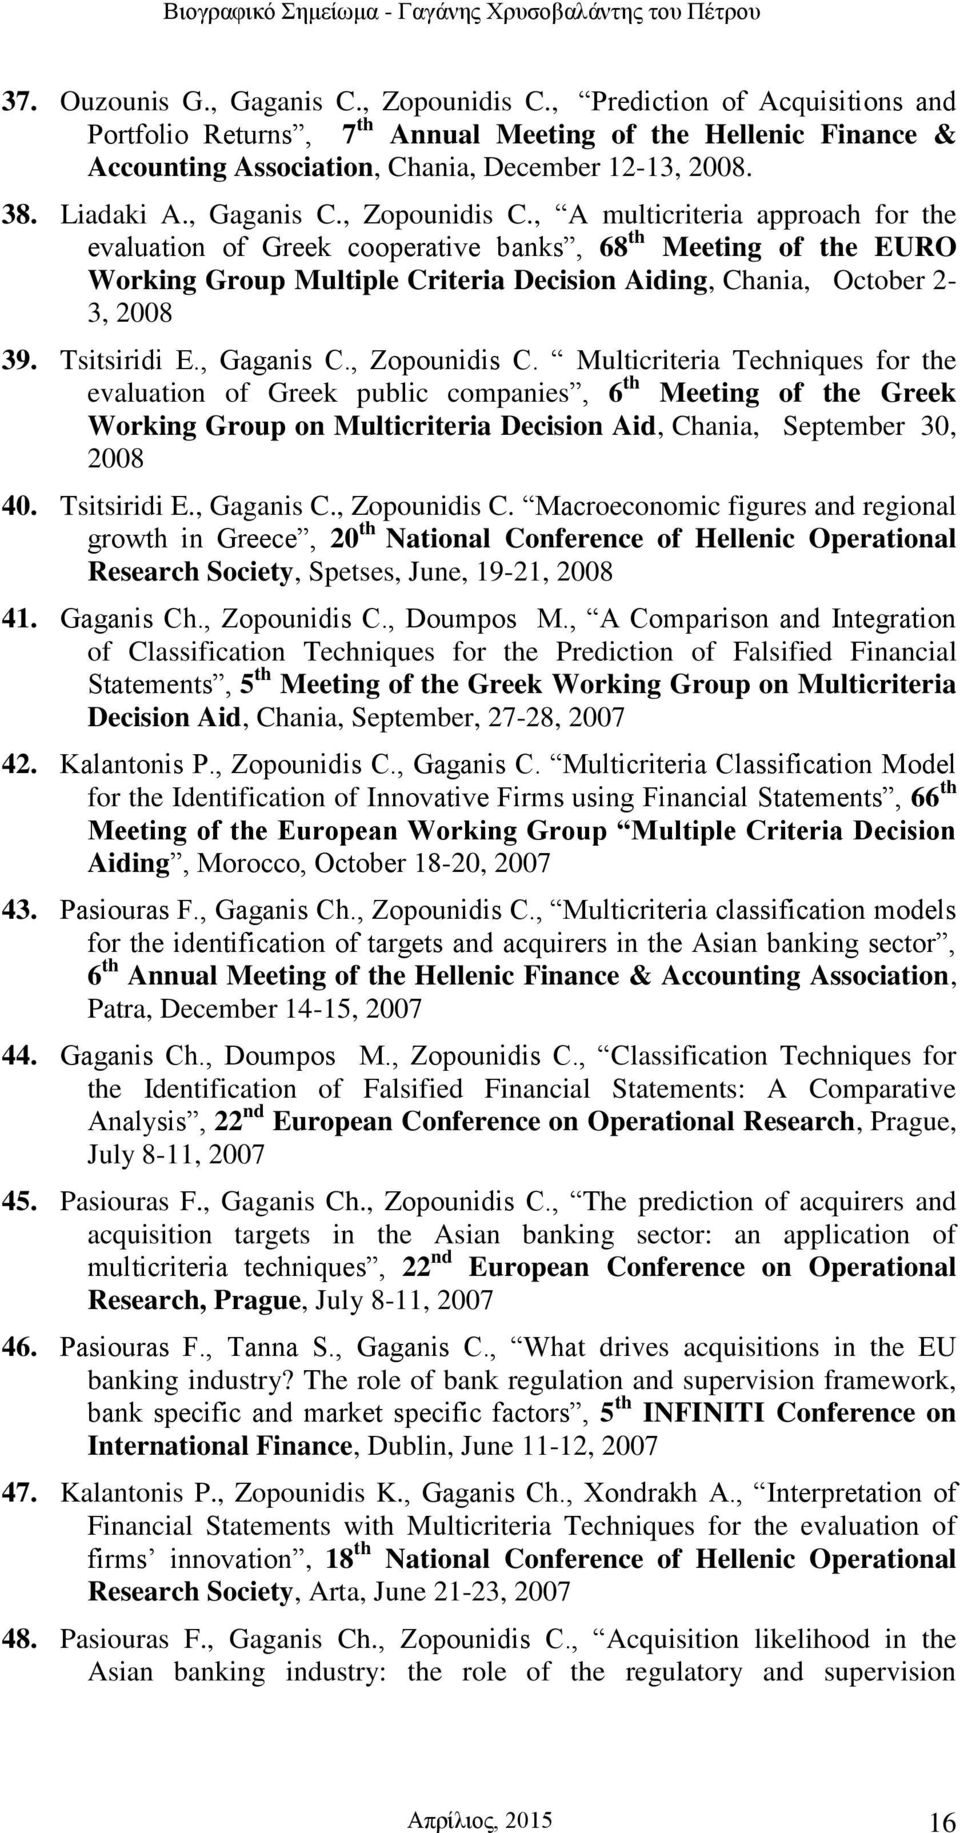 , A multicriteria approach for the evaluation of Greek cooperative banks, 68 th Meeting of the EURO Working Group Multiple Criteria Decision Aiding, Chania, October 2-3, 2008 39. Tsitsiridi E.